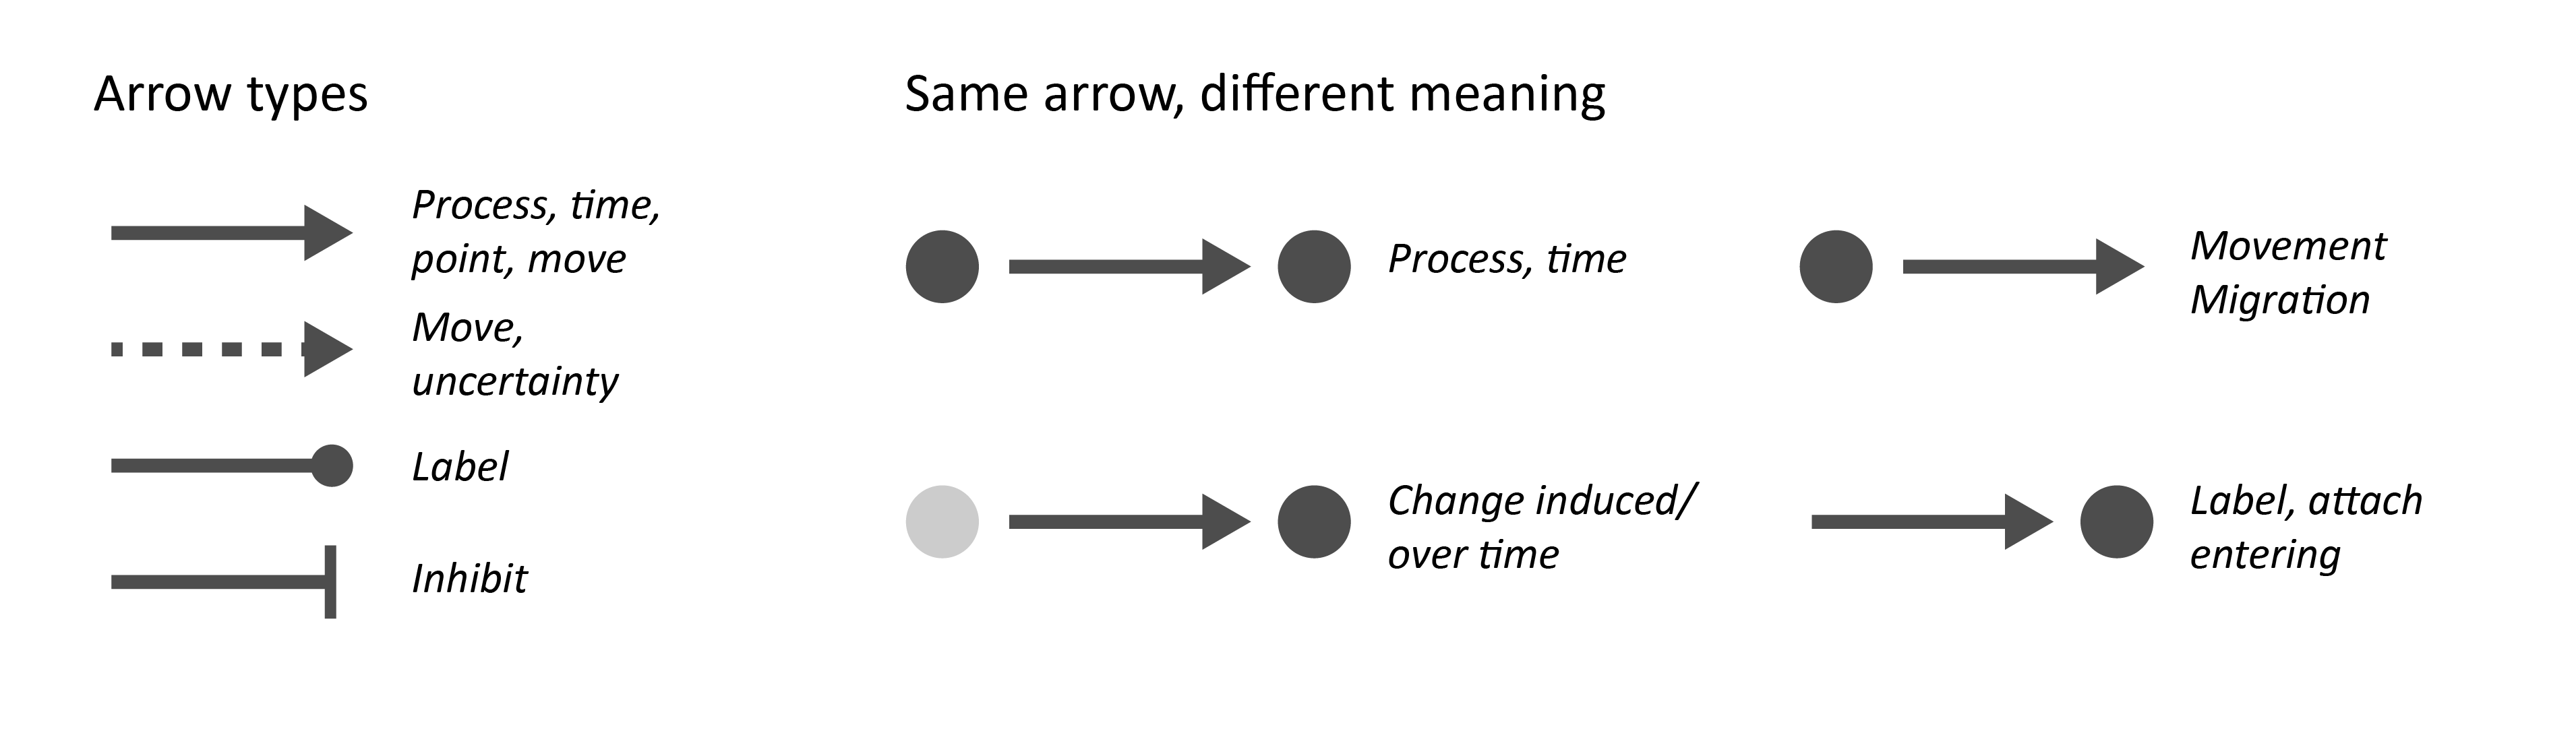 Different arrow types and arrow usage in Graphical Abstracts